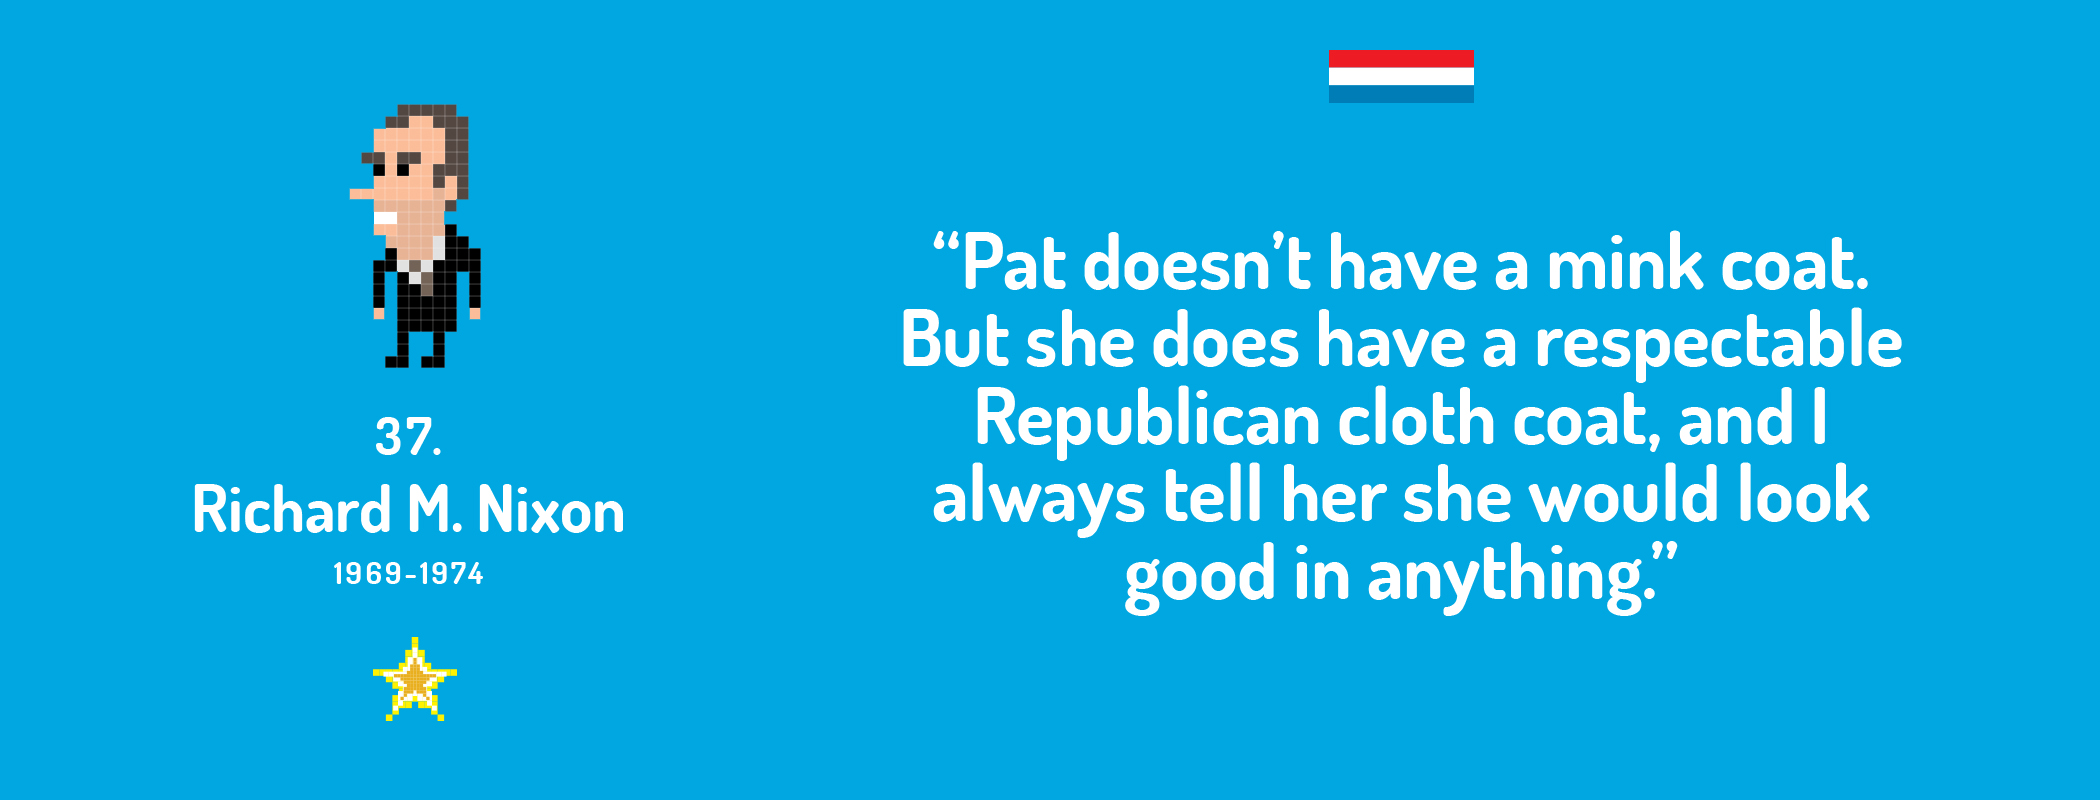 Pat doesn't have a mink coat. But she does have a respectable Republican cloth coat, and I always tell her she would look good in anything.